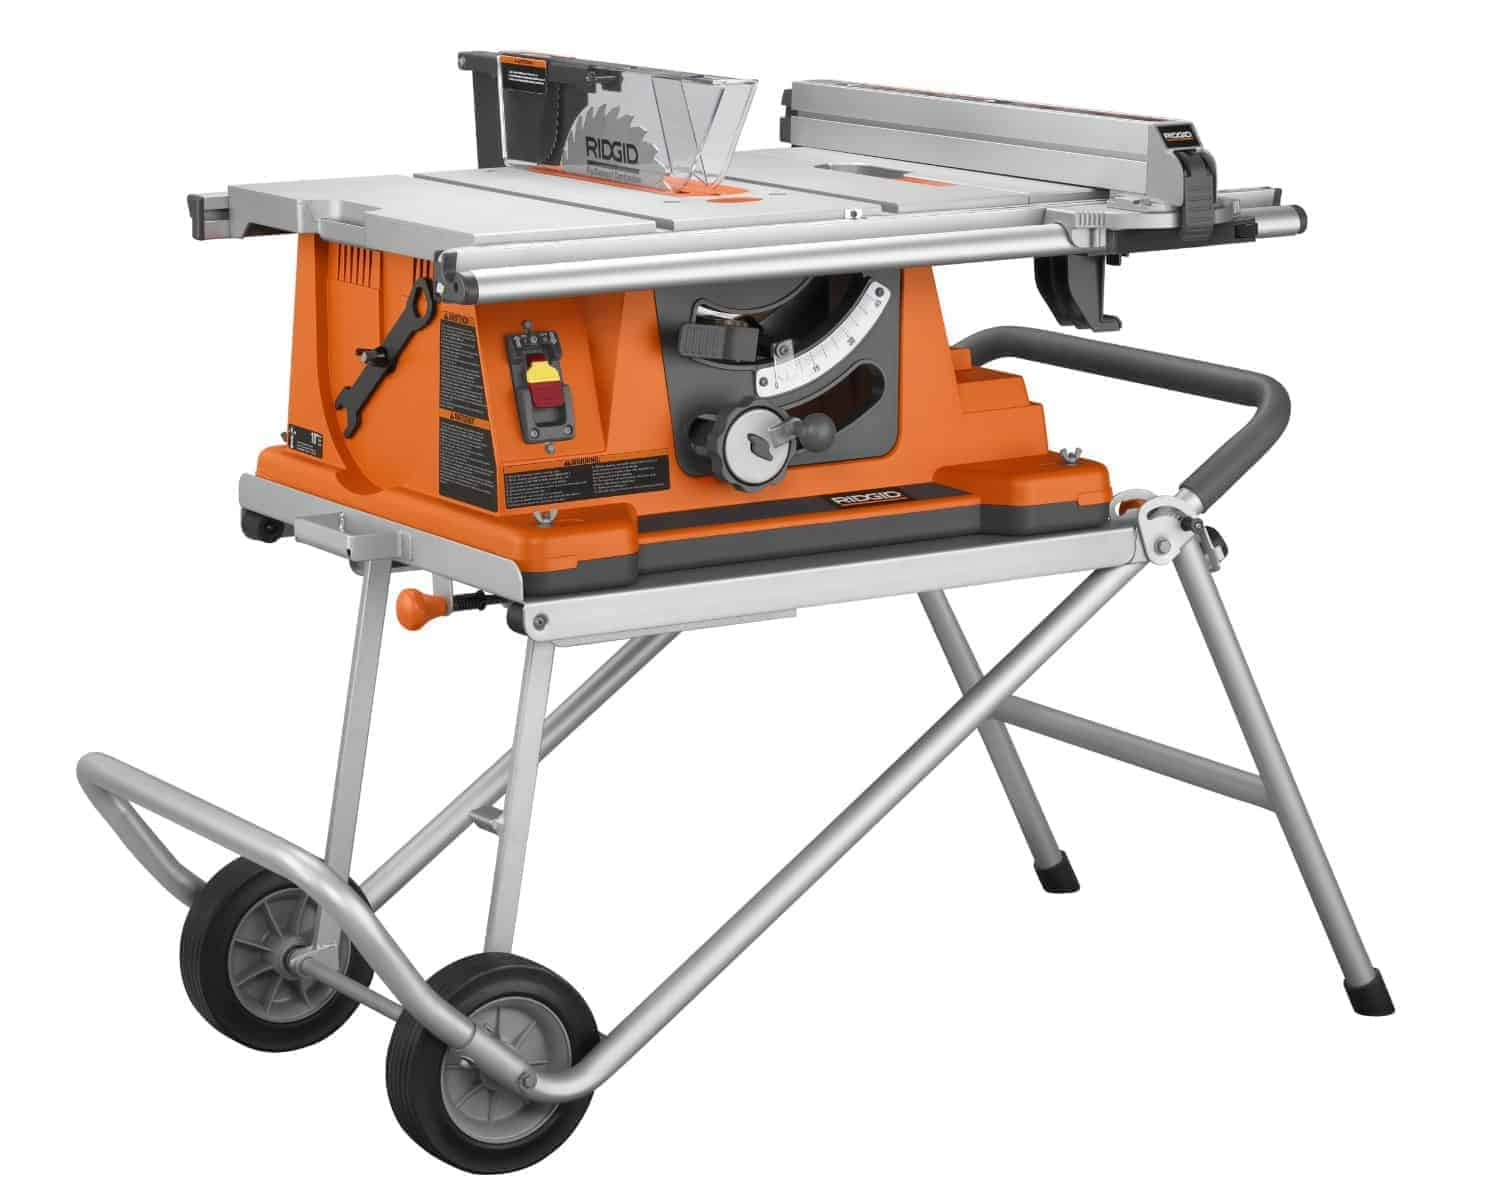 Ridgid r4510 heavy duty table saw review us80 Table saw fence reviews